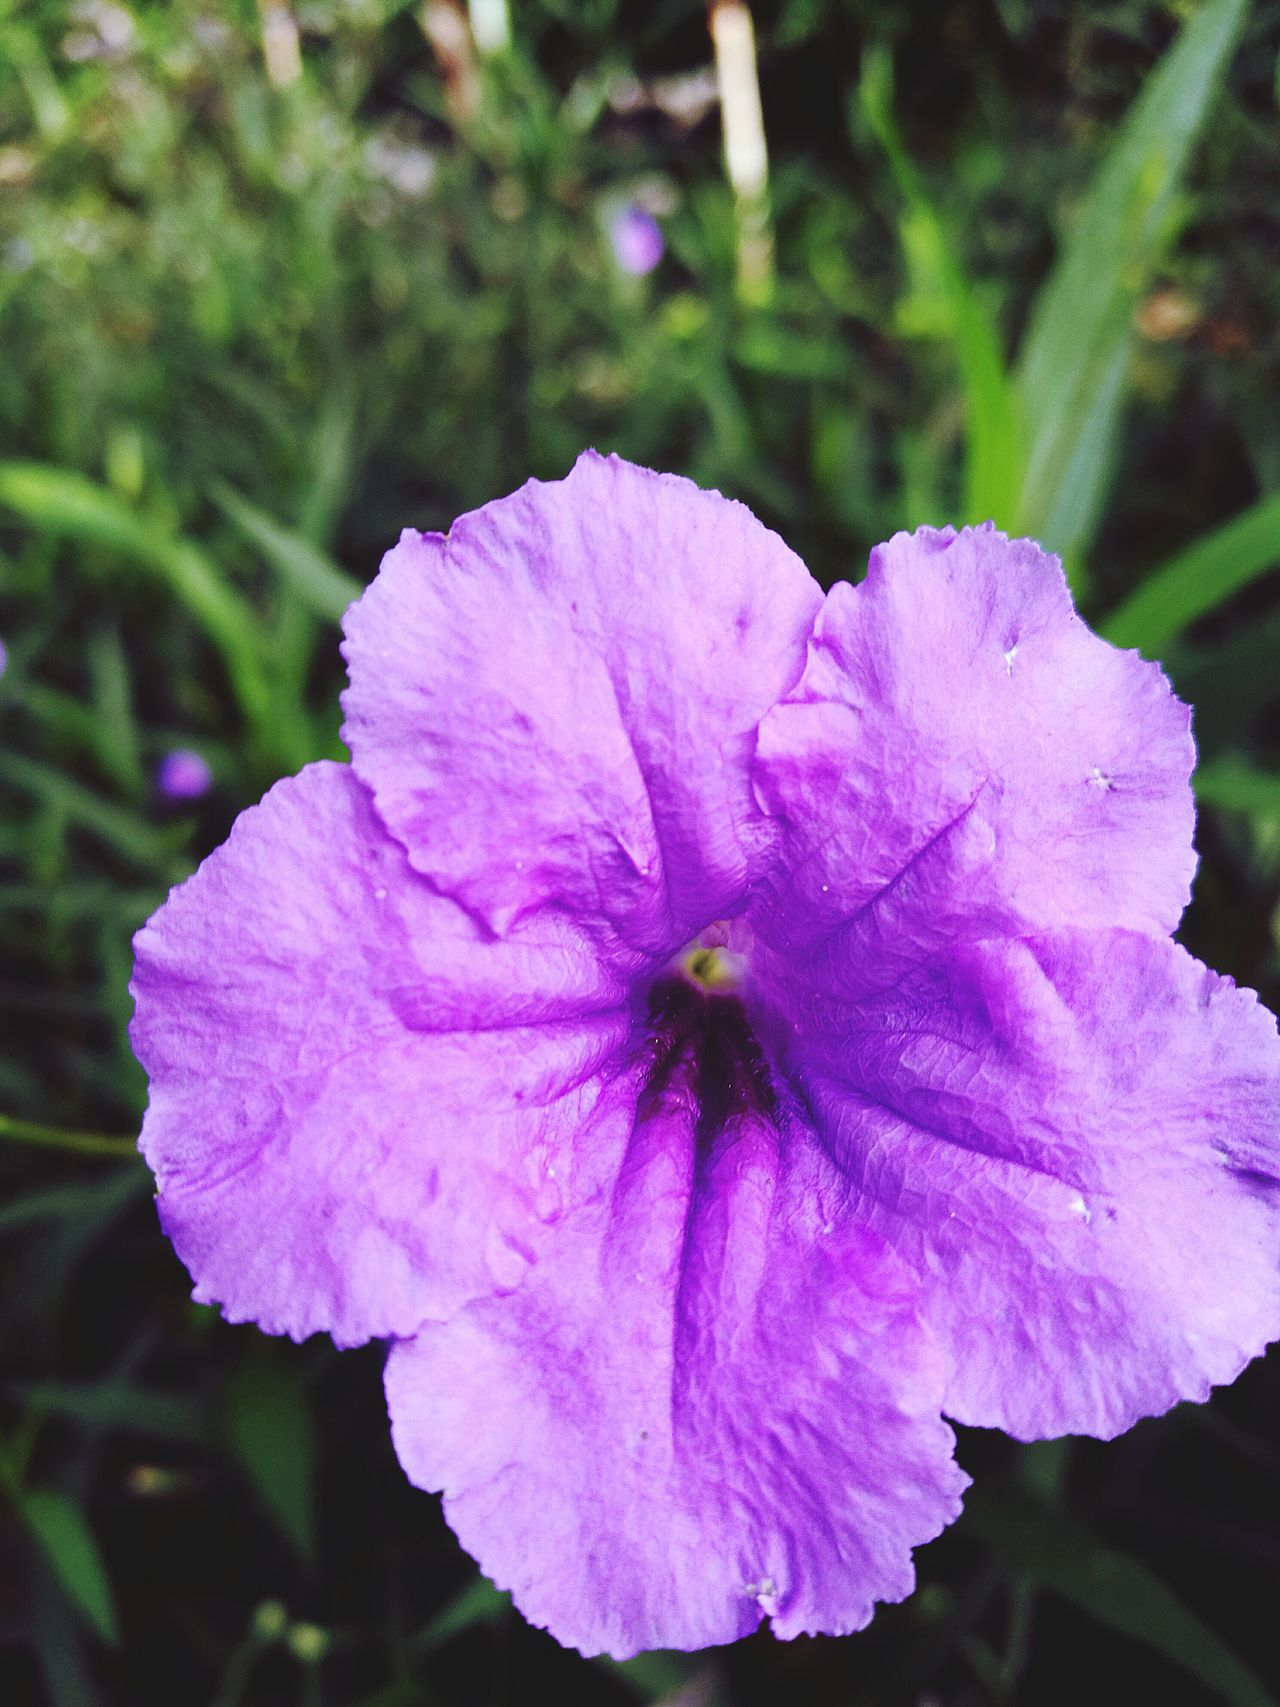 Flower Purple Nature Close-up Freshness Flower Head Beauty In Nature Growth Plant No People Outdoors Huaweip9photos Leicalens Leica_camera Tropical Flower